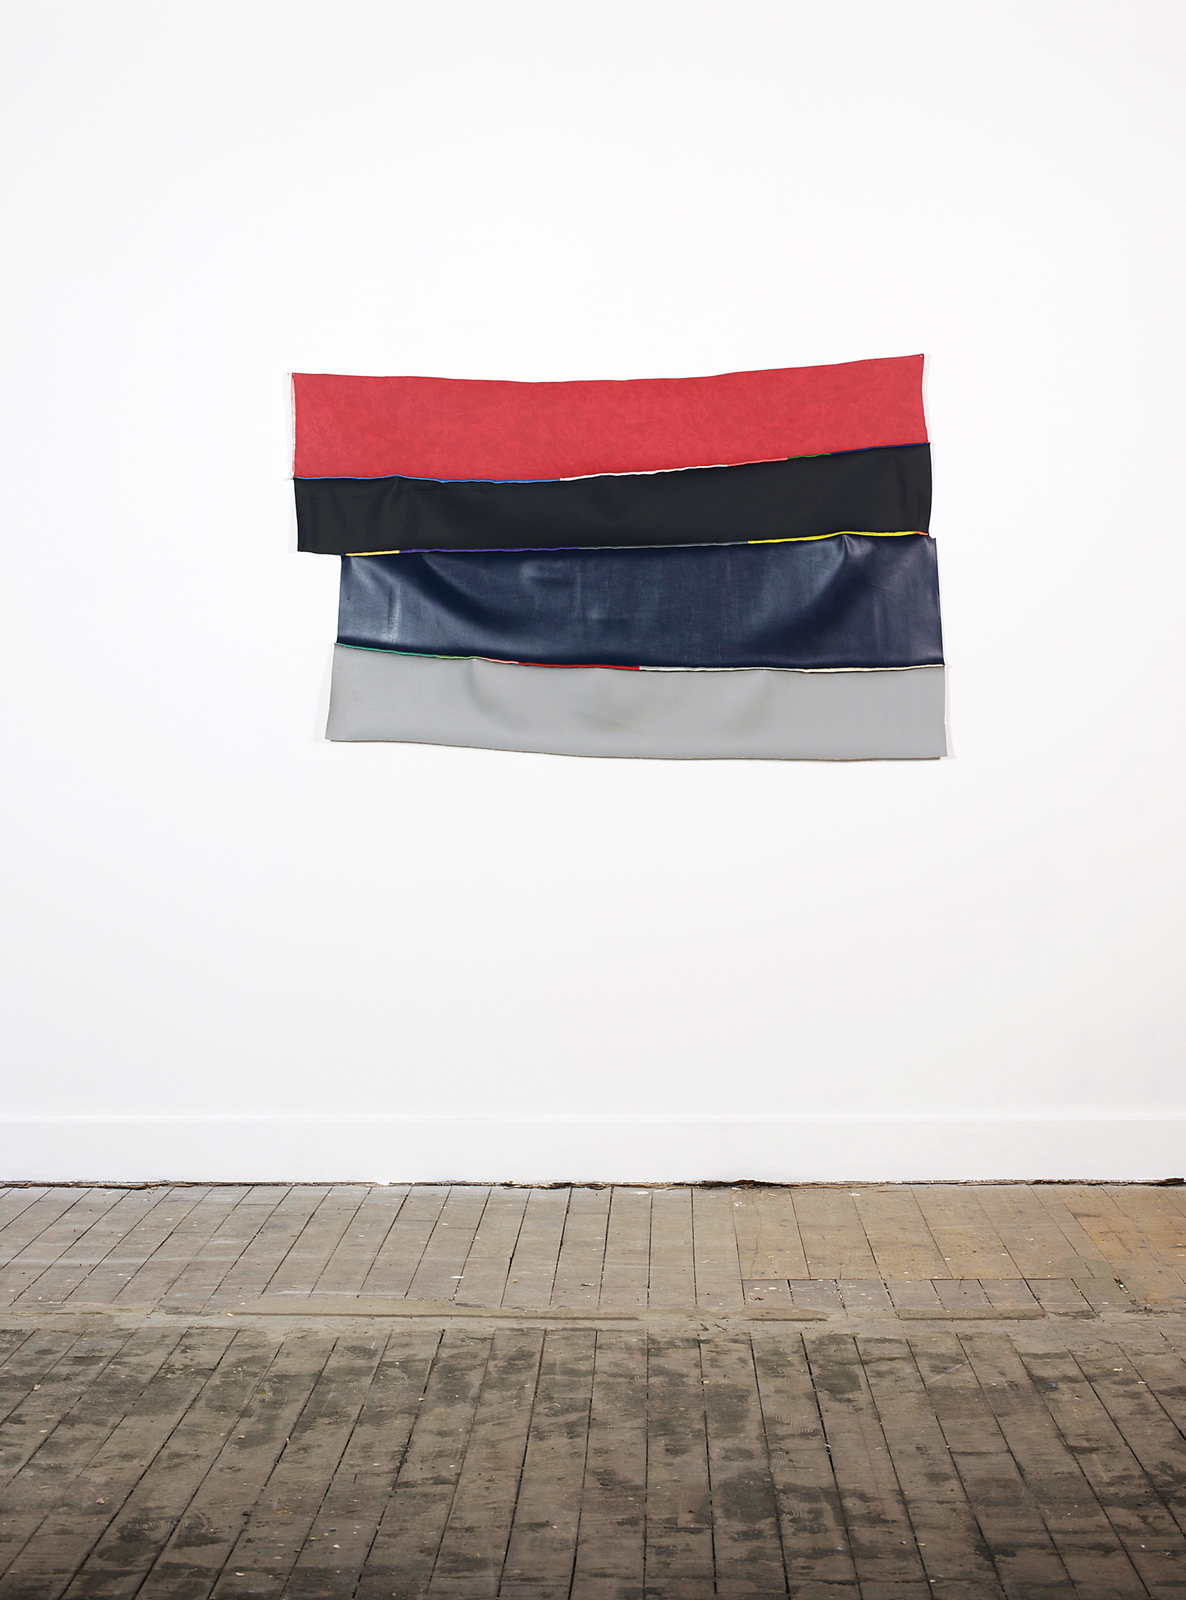 Stitched vinyl series: Red, black, blue and grey | Nicola Ellis | 2015 | vinyl offcuts, cotton thread | 152cm x 90cm 5cm | image: Stephen Iles Photography